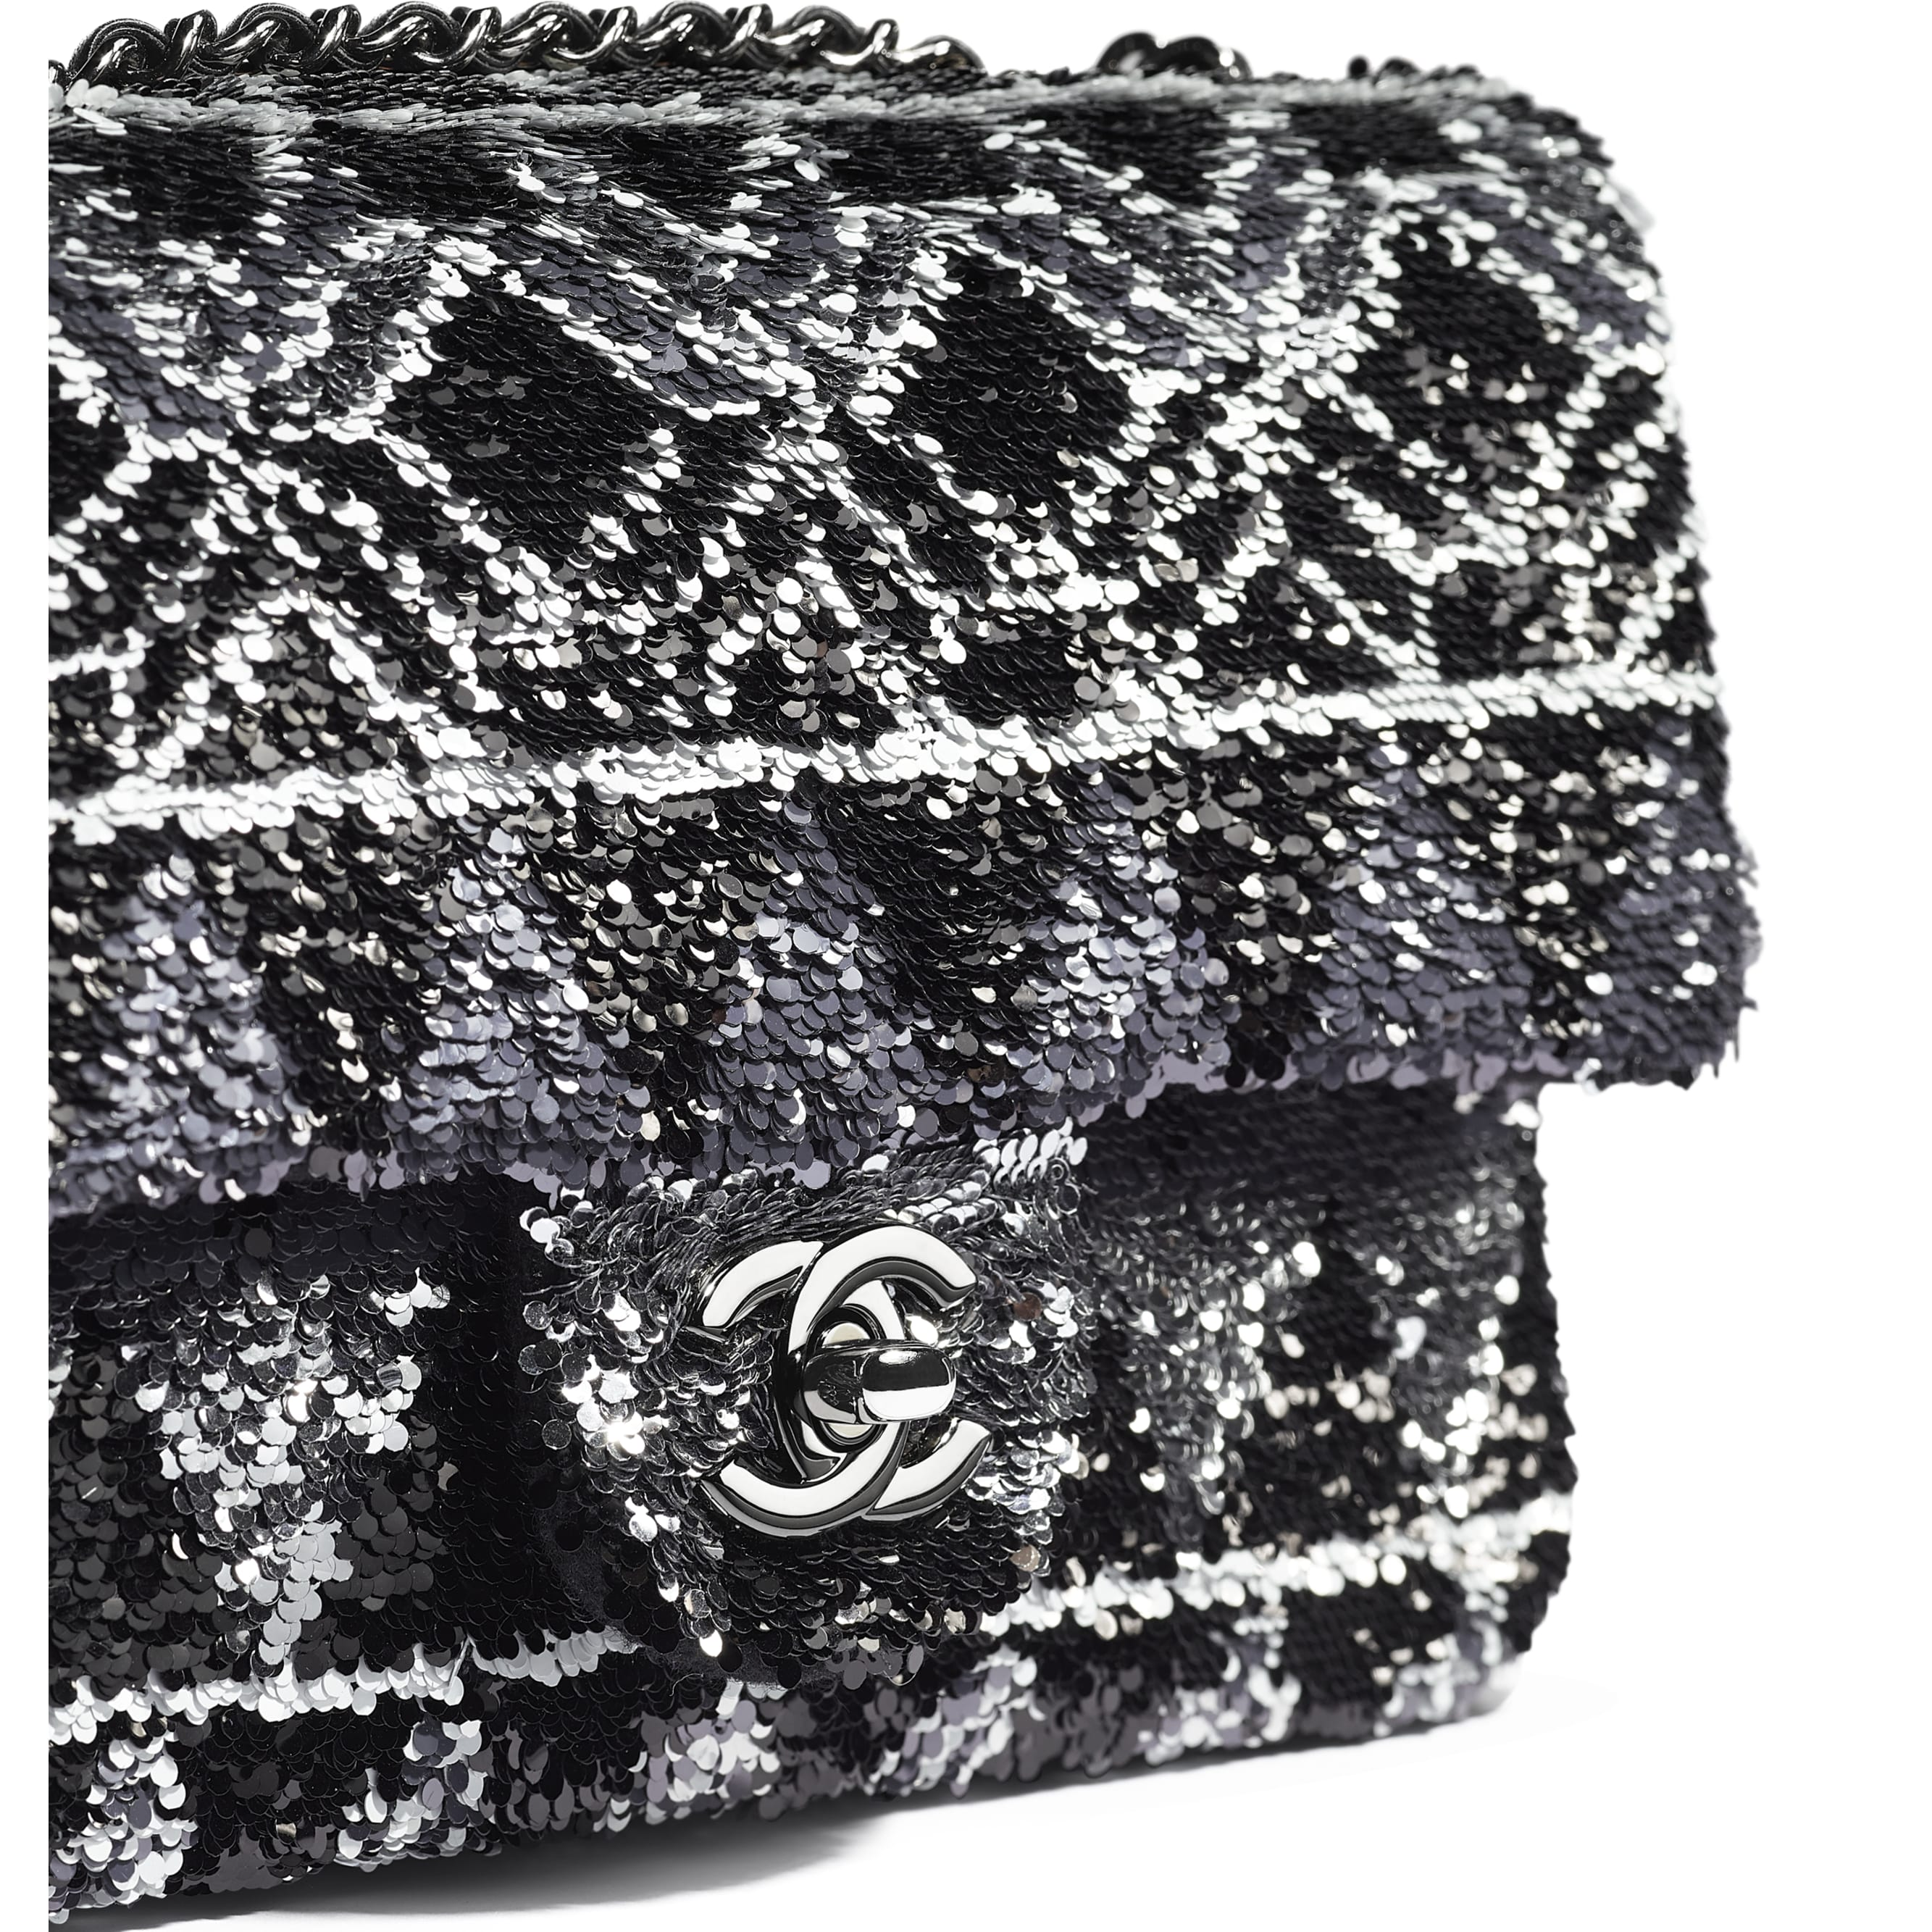 Flap Bag - Silver & Black - Sequins & Ruthenium-Finish Metal - Extra view - see standard sized version